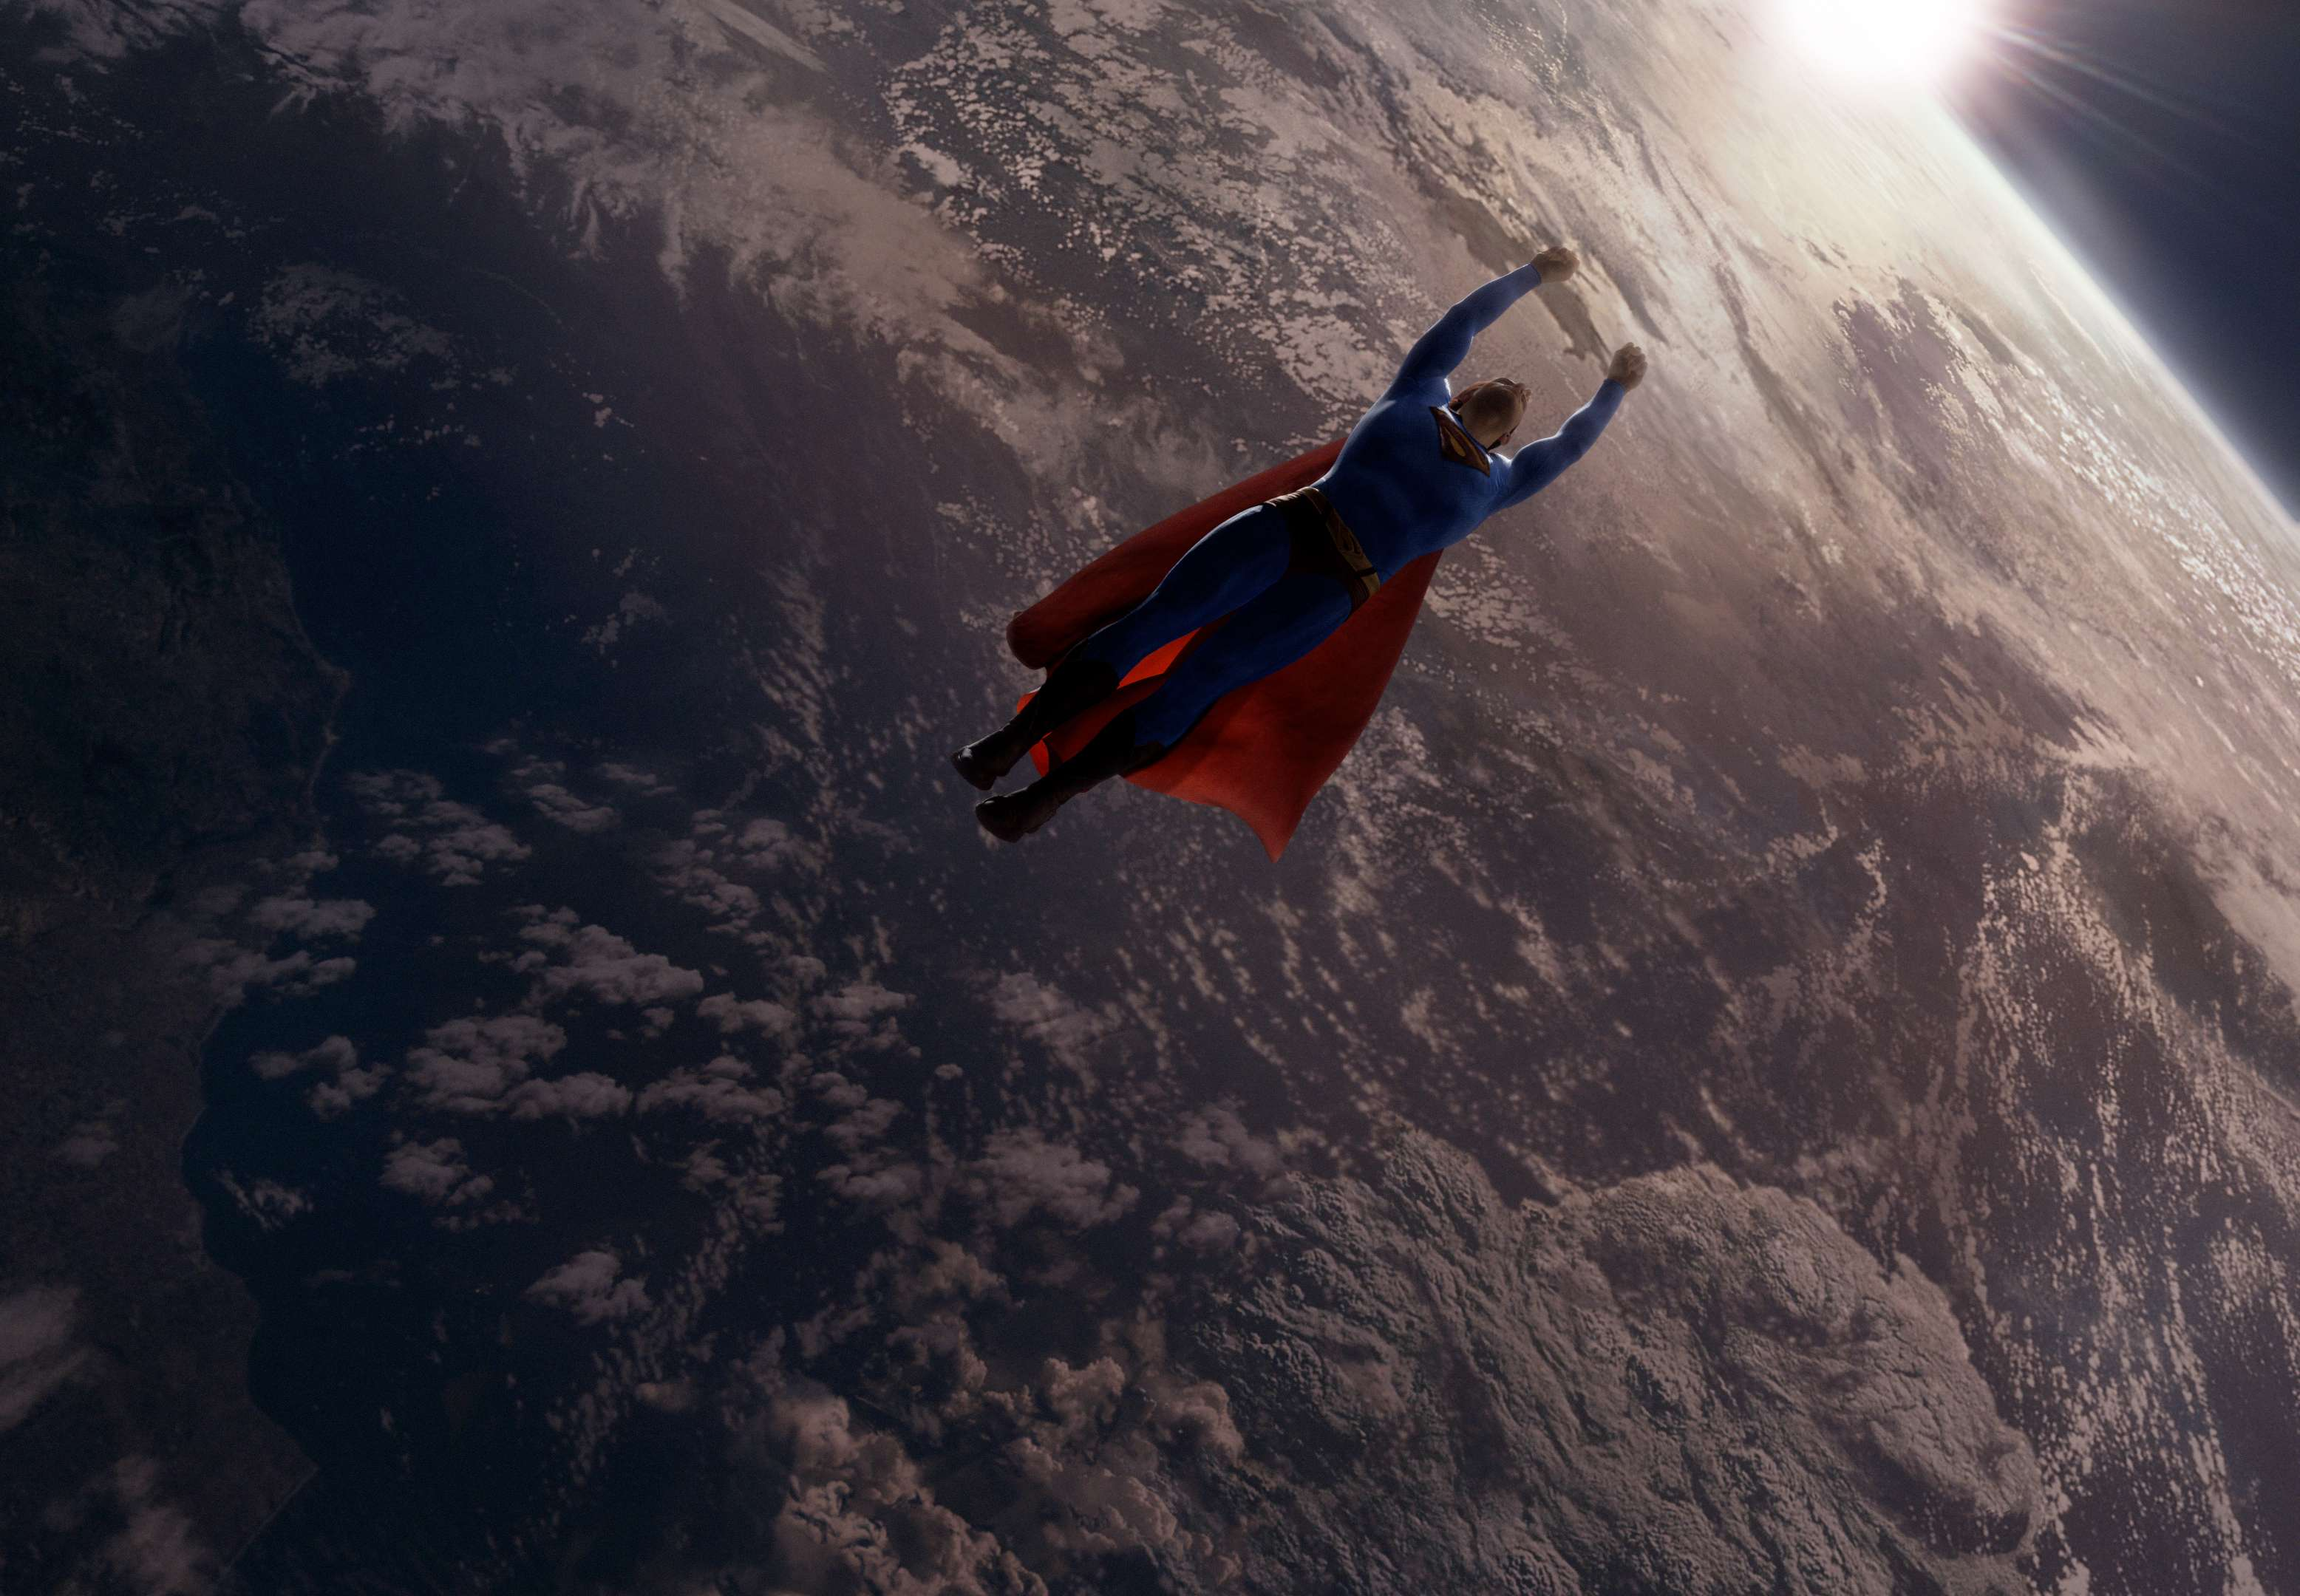 Superman VS. the Myth of Aristocracy